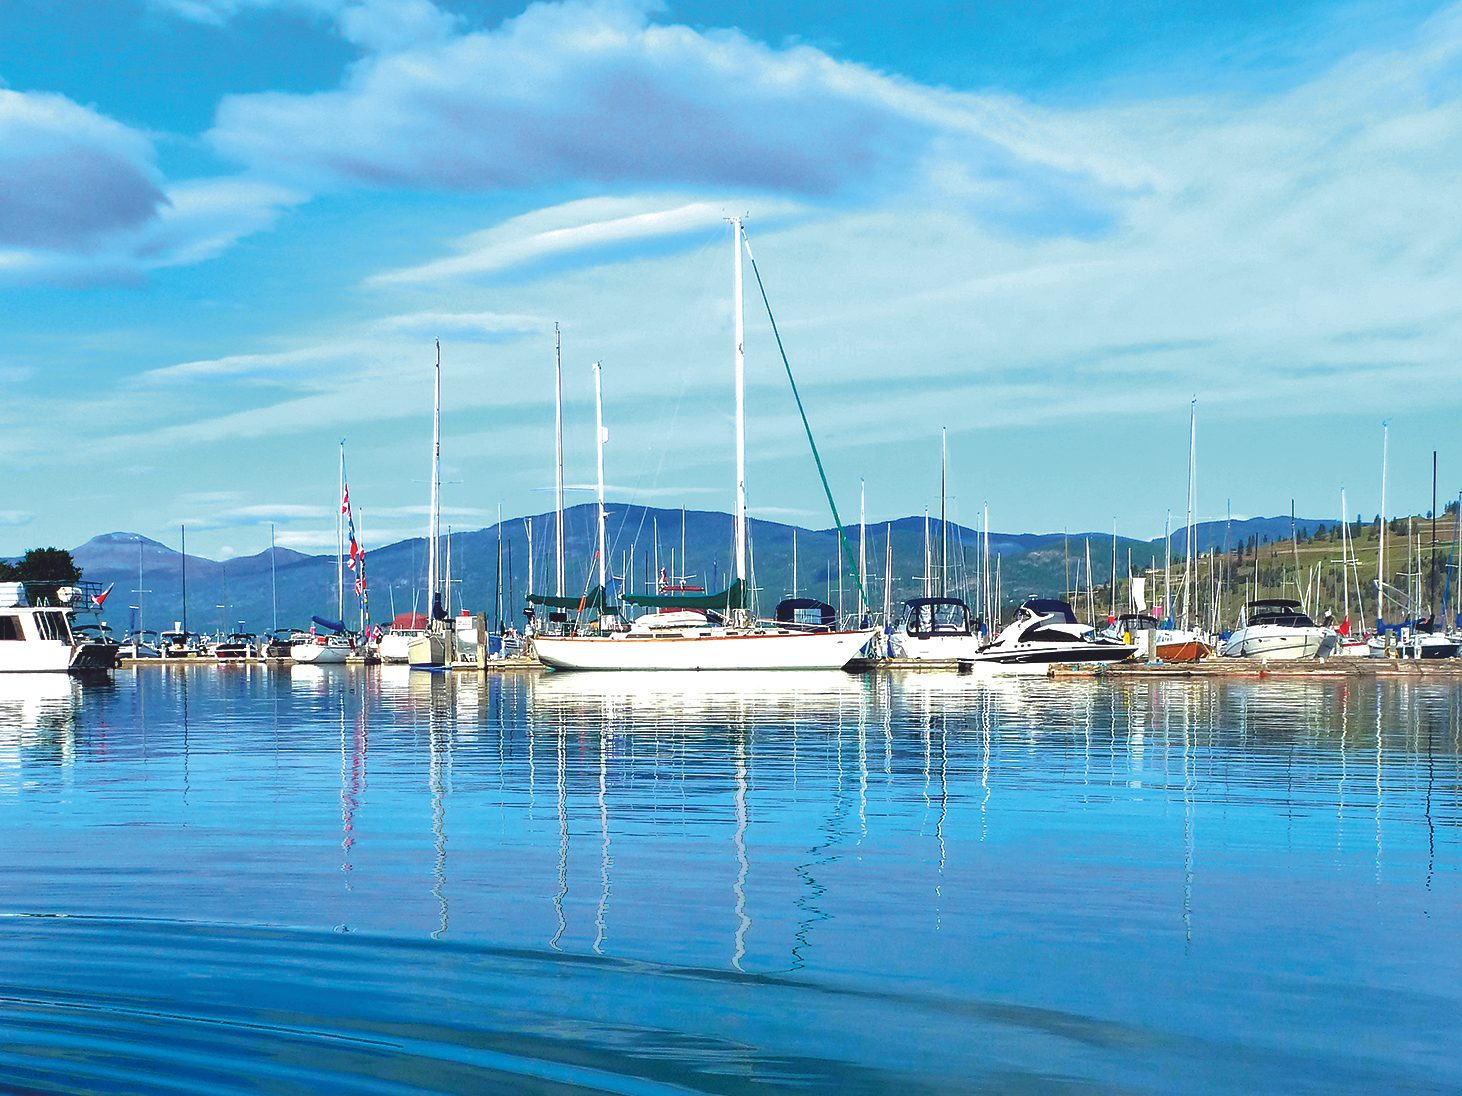 My Hometown: Okanagan Landing, B.C.